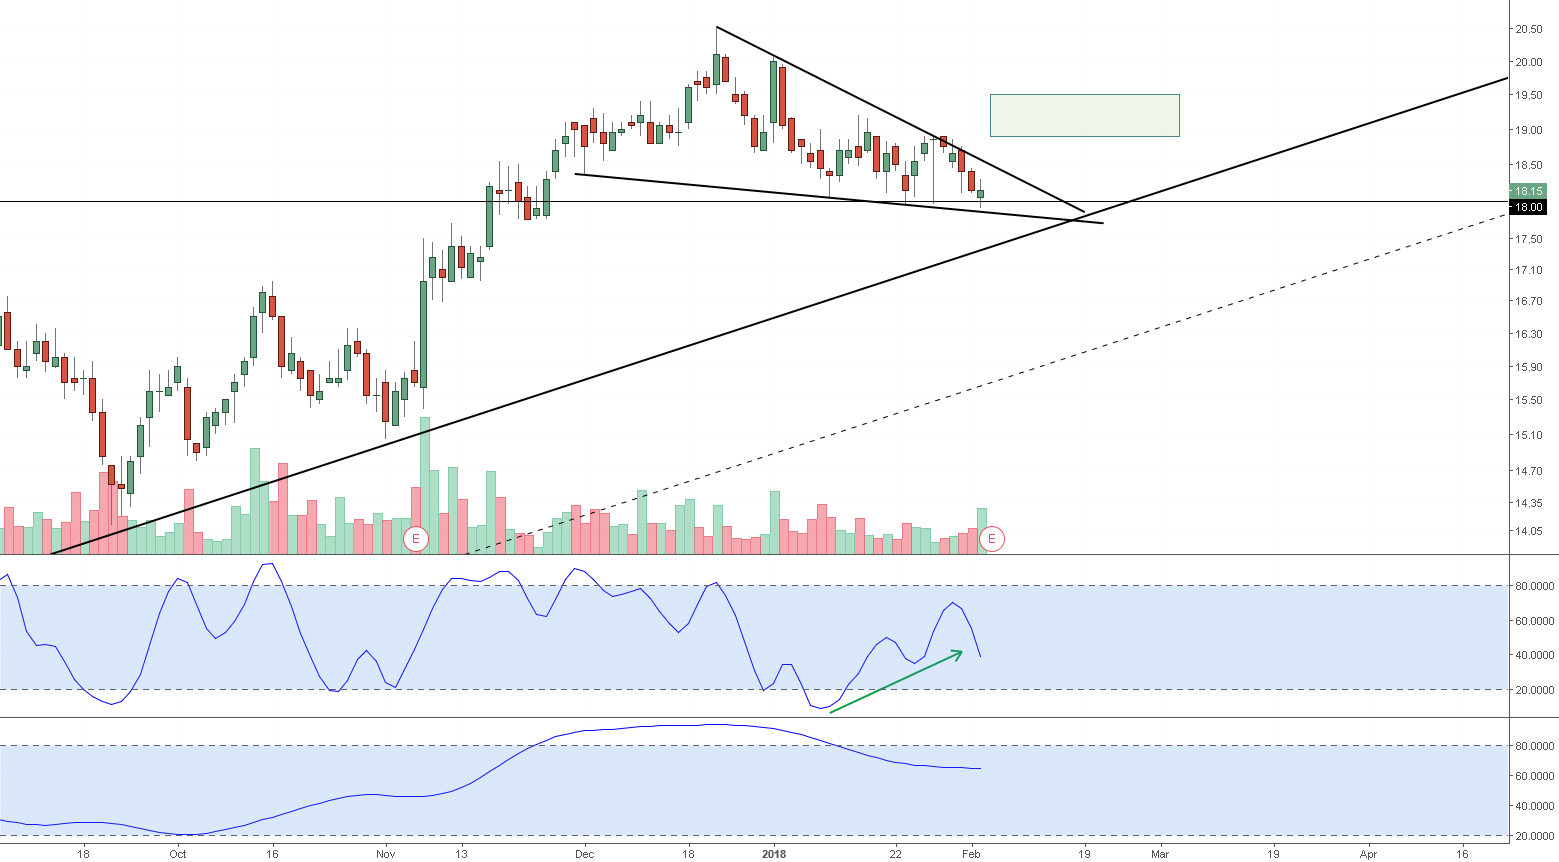 FRPT - Falling Wedge Breakout Update